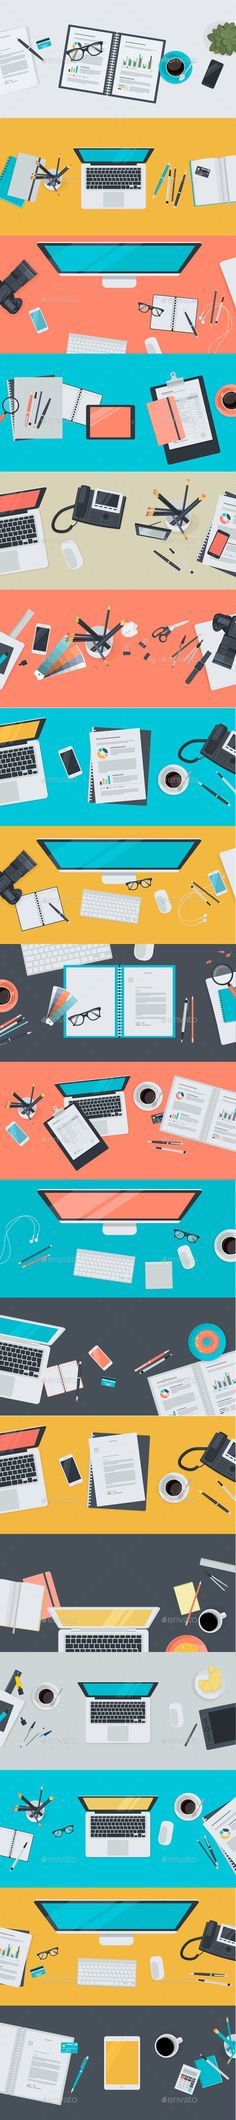 Set of Flat Design Workspace Concepts #jpg #image #business #icon • Available here → https://graphicriver.net/item/set-of-flat-design-workspace-concepts/10622797?ref=pxcr